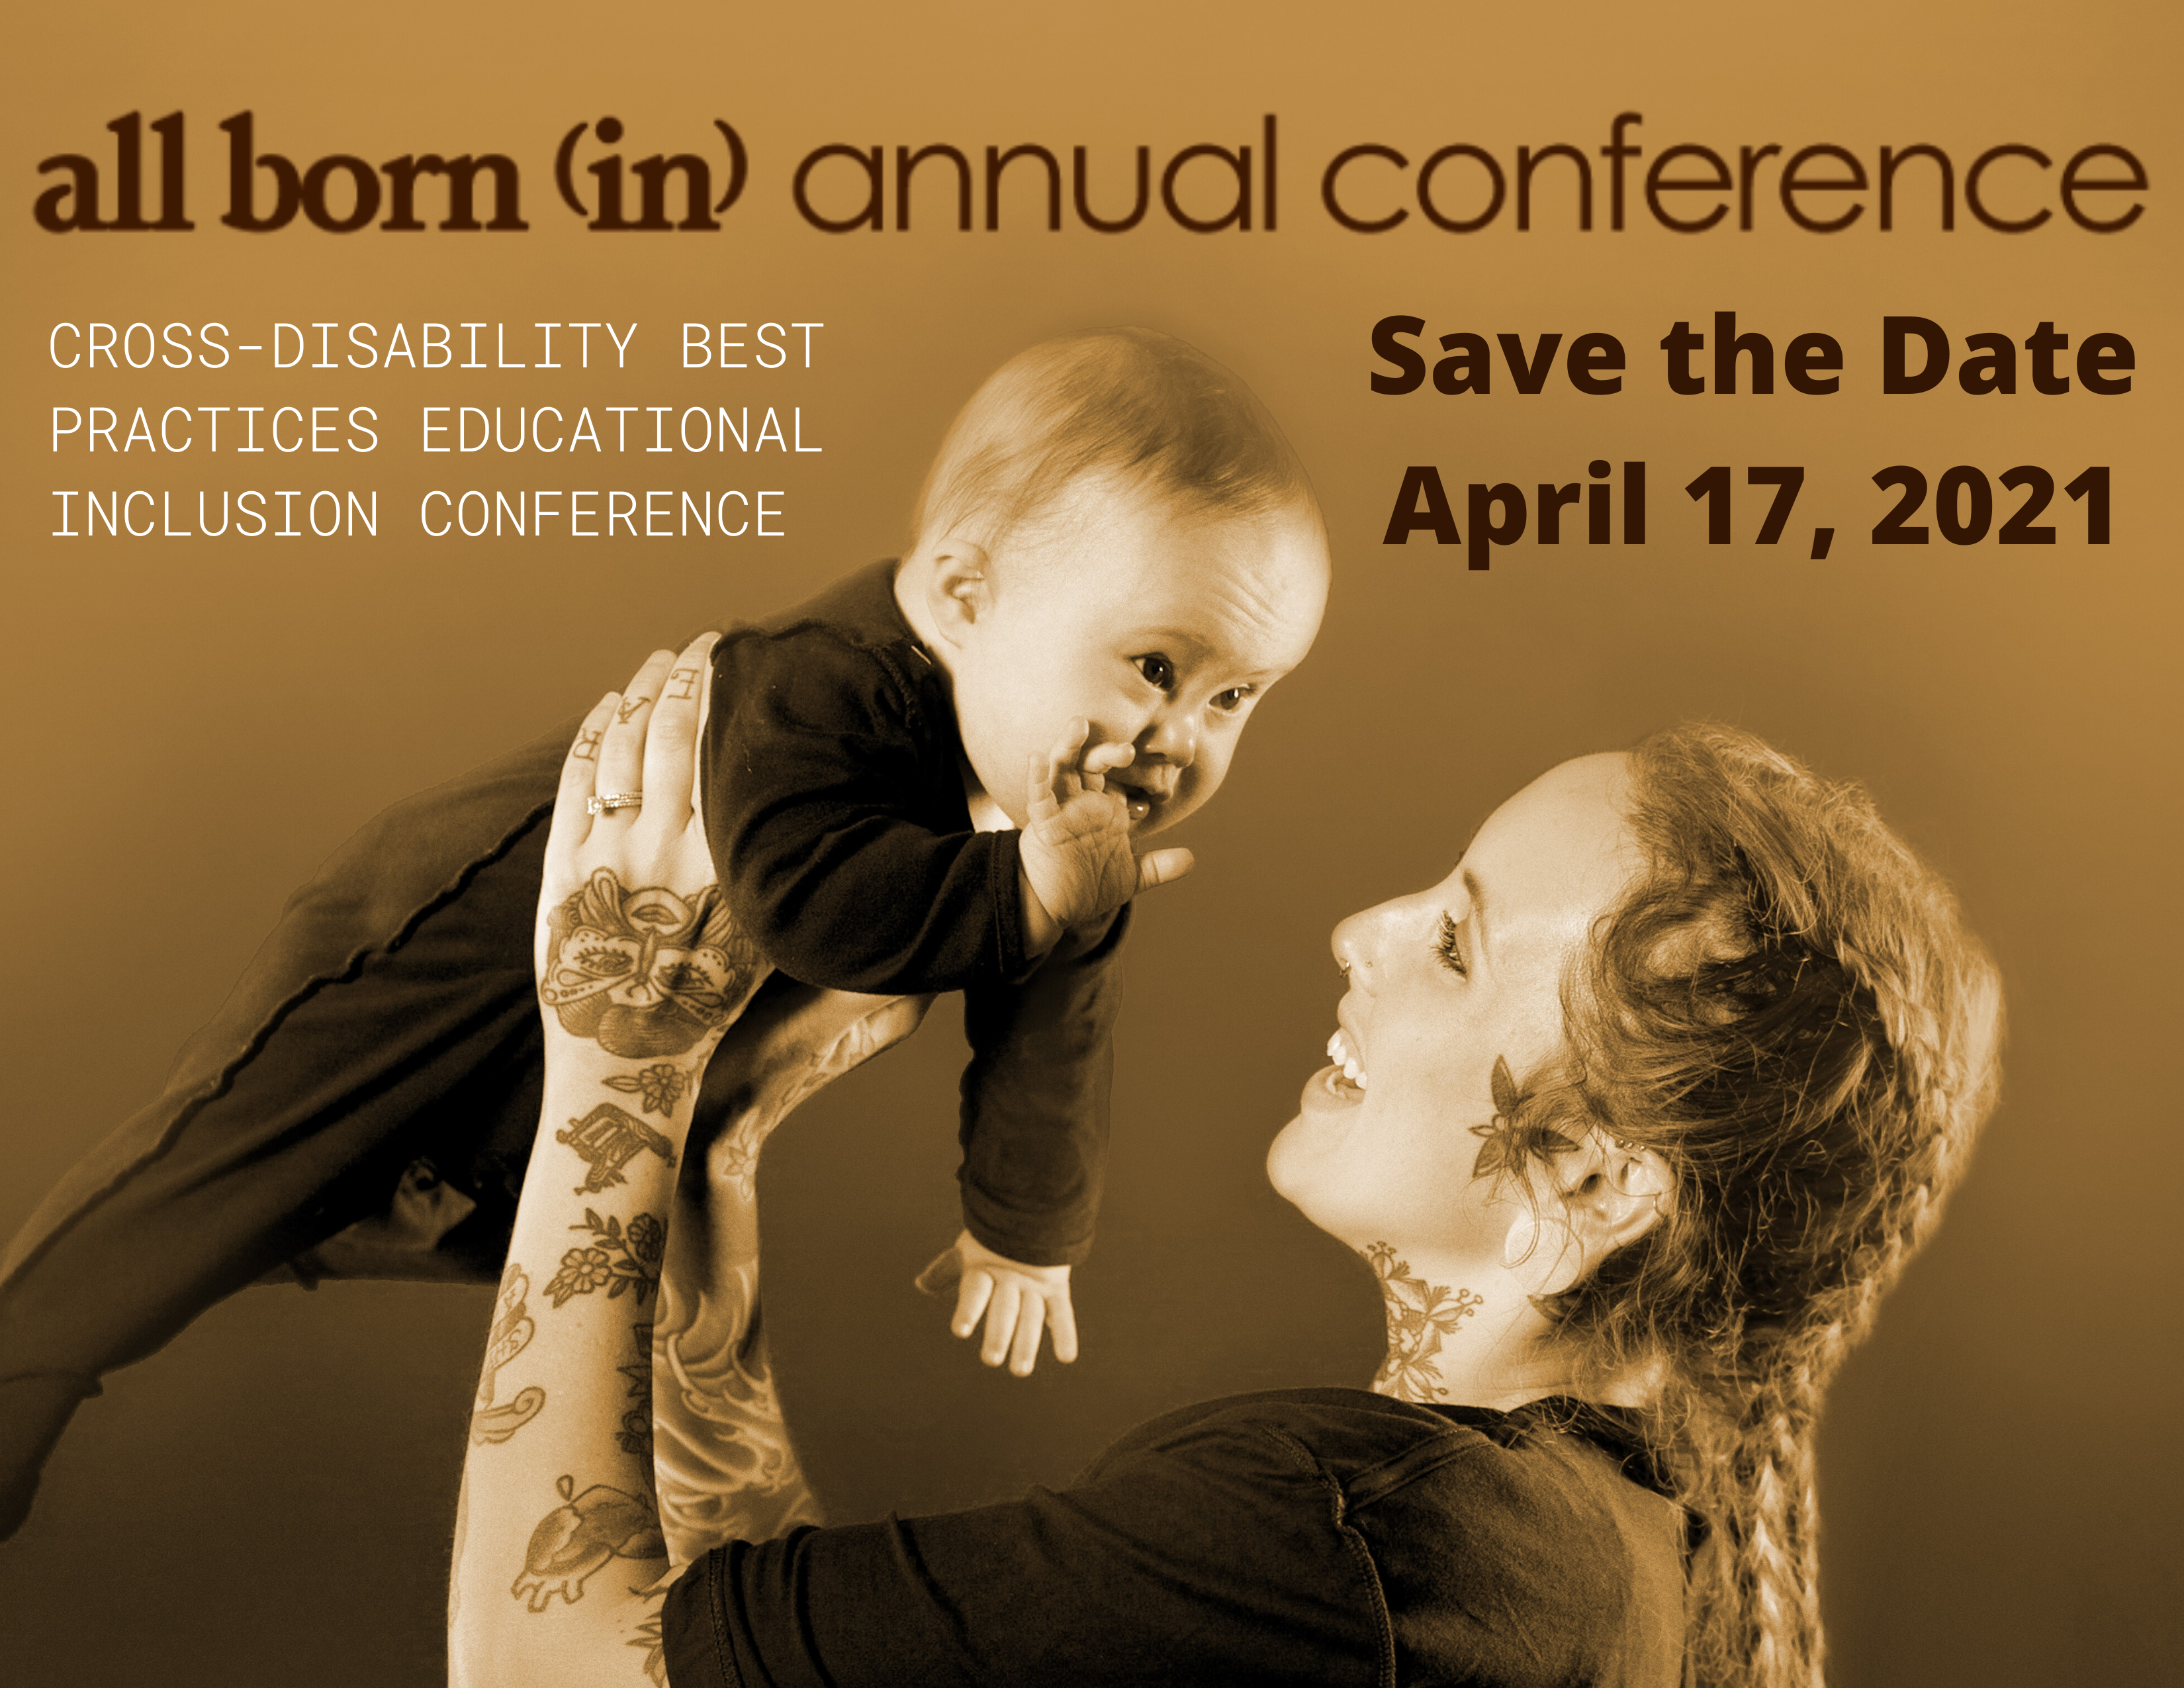 All Born (In) 15th Annual Cross-Disability Educational Inclusion Conference